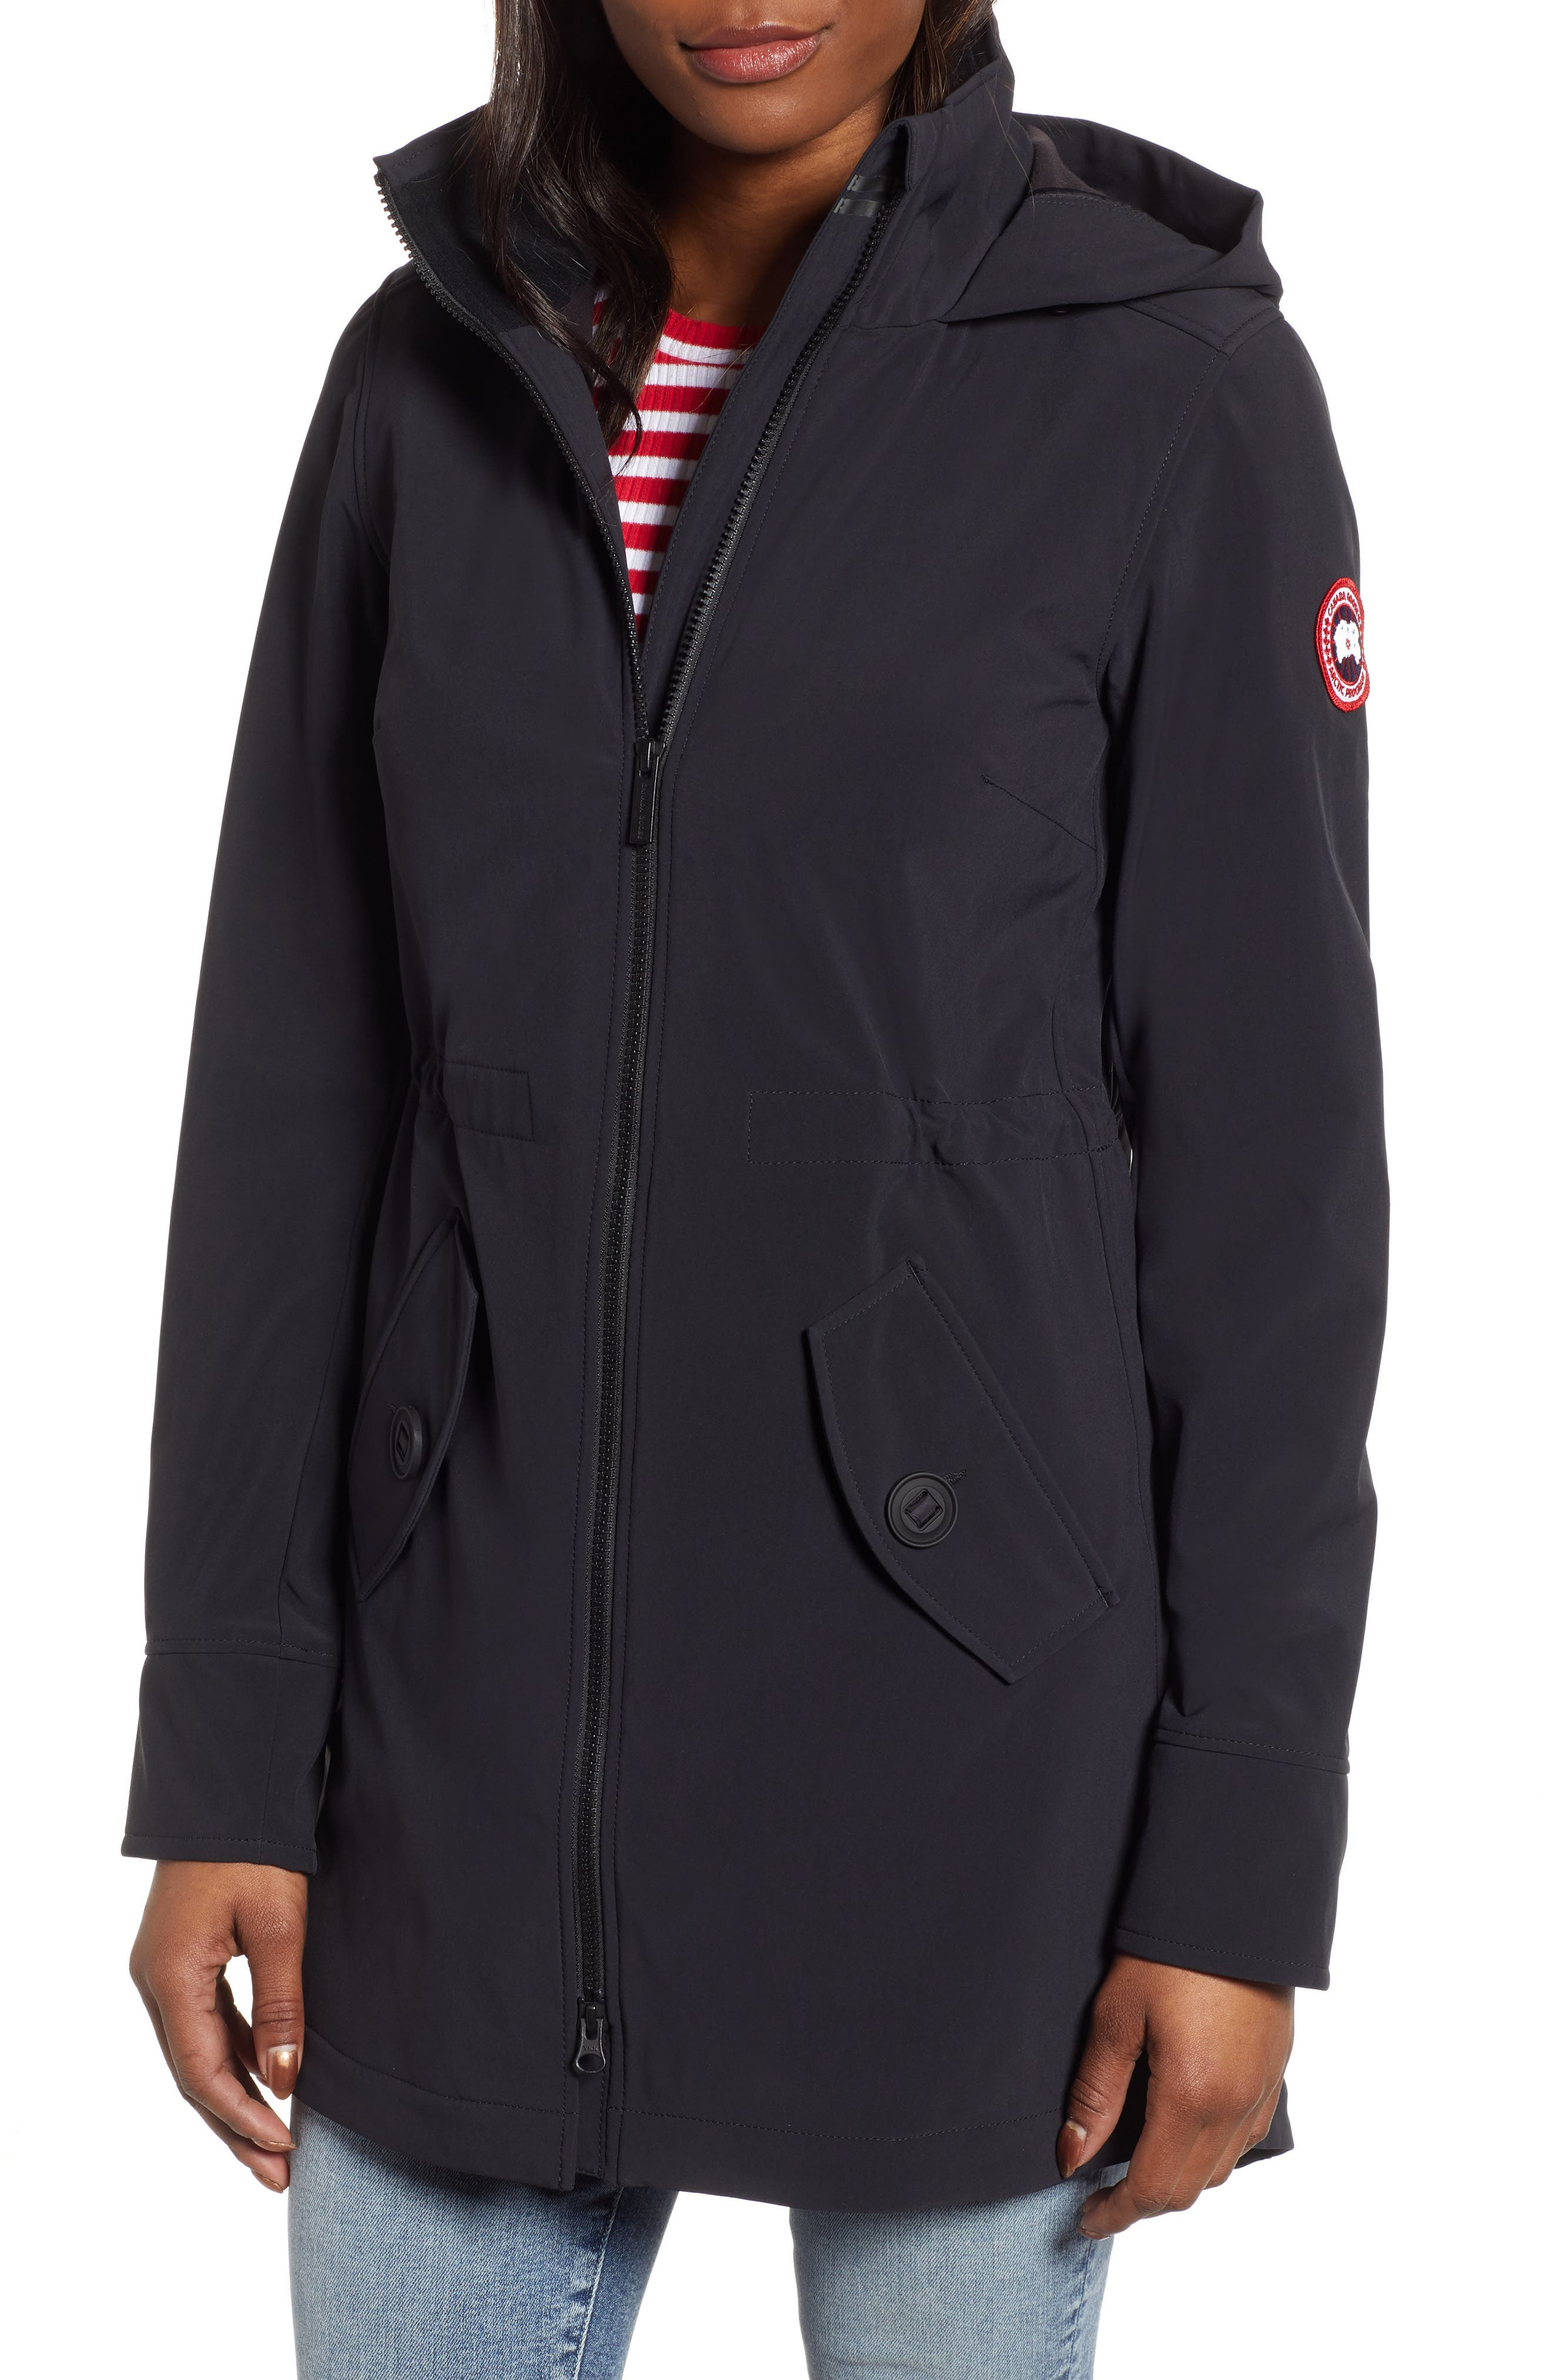 CANADA GOOSE, Avery Water Resistant Hooded Jacket, Main thumbnail 1, color, BLACK